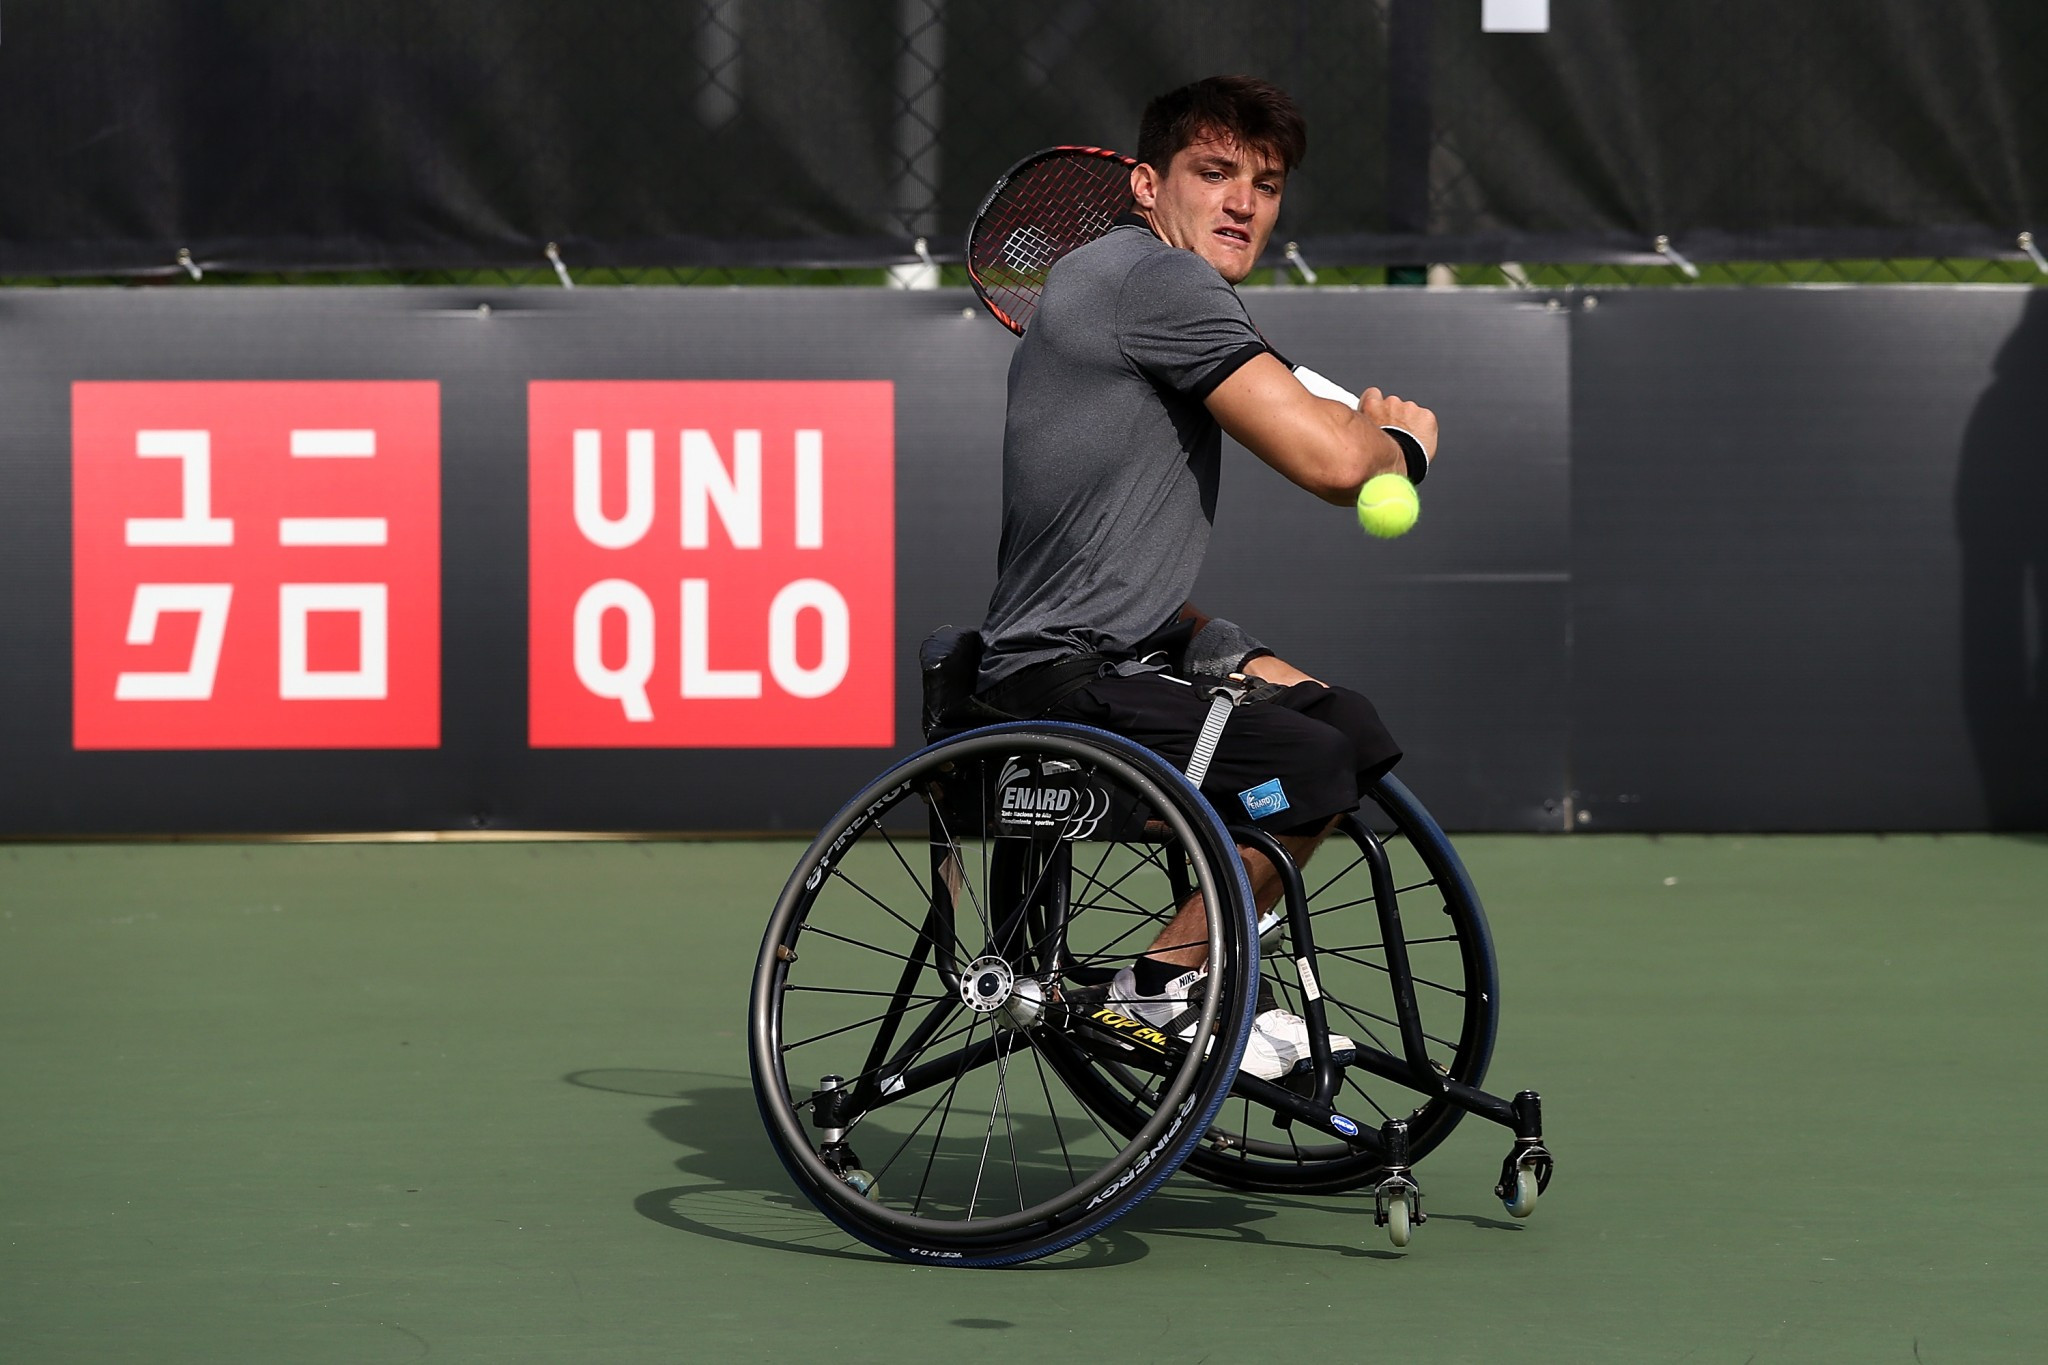 World number one Fernández through to wheelchair men's singles semi-finals at US Open